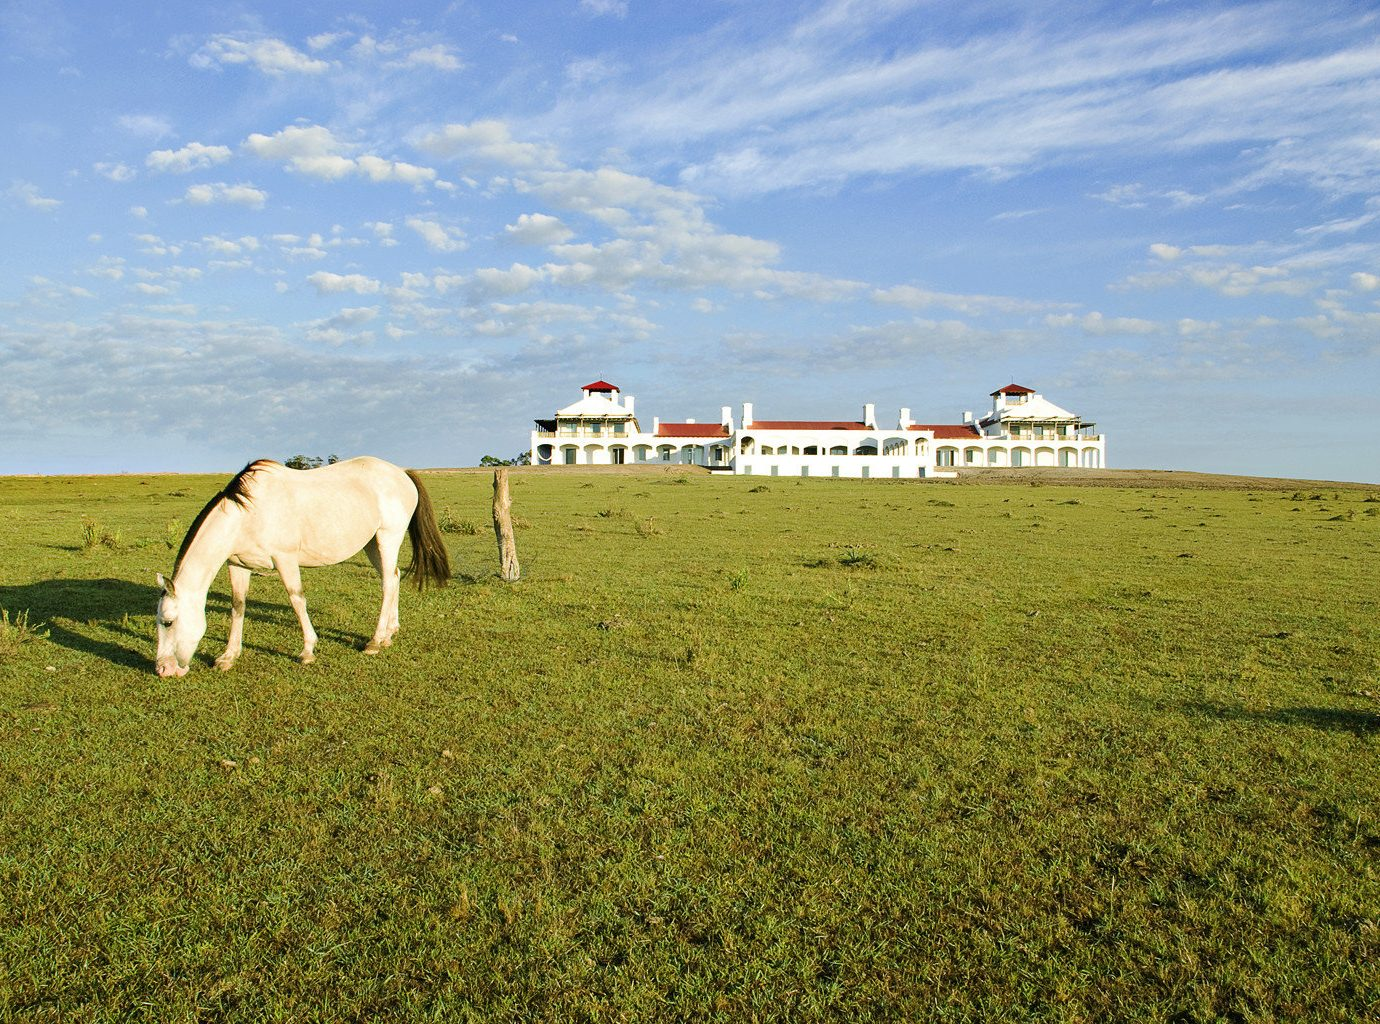 Beach Romantic Getaways south america Trip Ideas Uruguay grass sky outdoor field habitat pasture grassland natural environment plain grazing ecosystem prairie steppe horizon meadow green rural area Coast hill landscape Farm grassy agriculture Sea flower open lush horse day